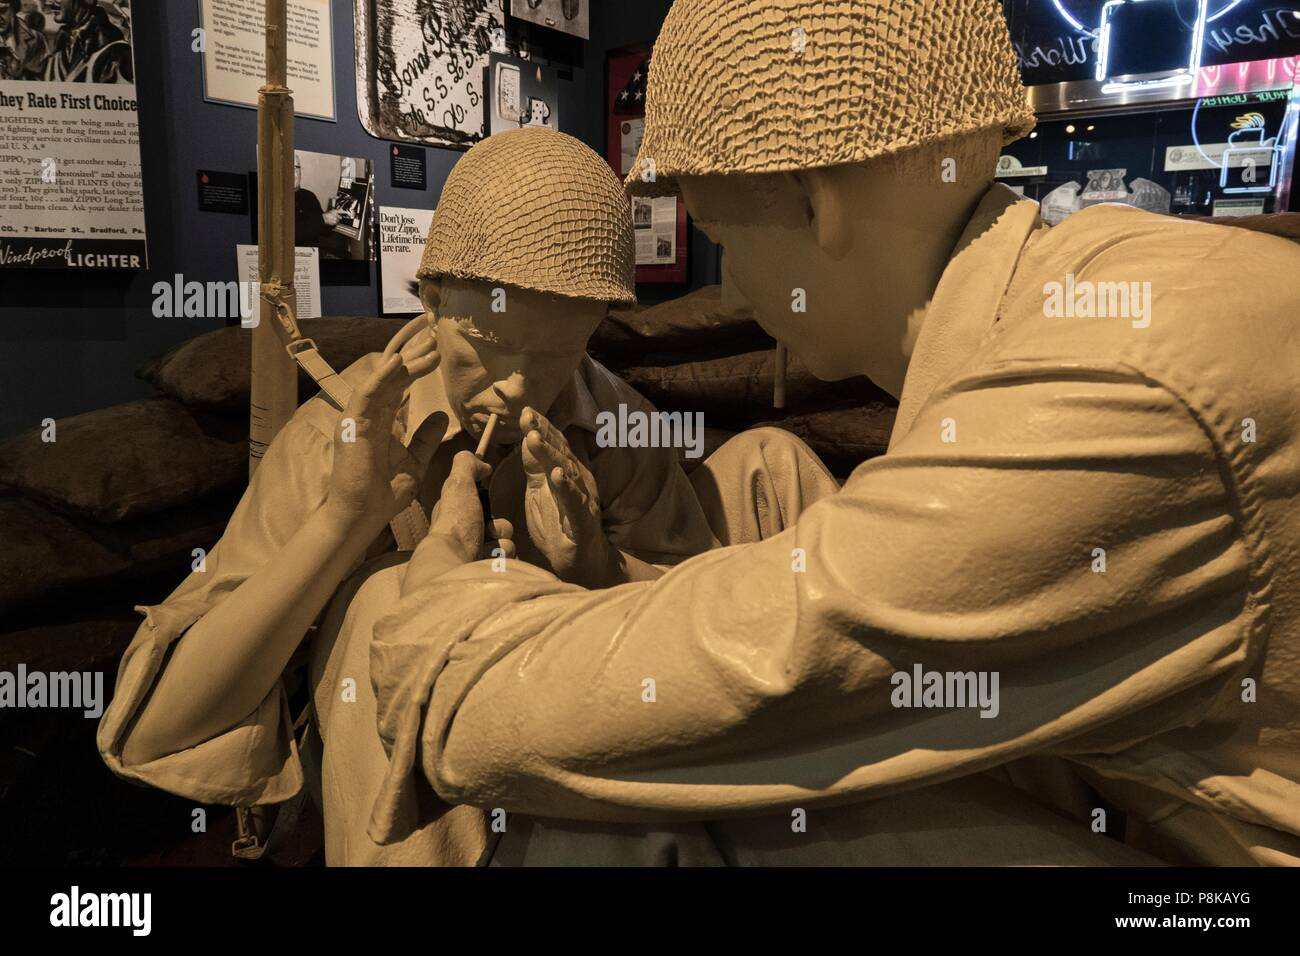 A statue of two World War II infantry man sharing a smoke and using a zippo lighter is showcased at zippo Museum in Bradford Pennsylvania - Stock Image